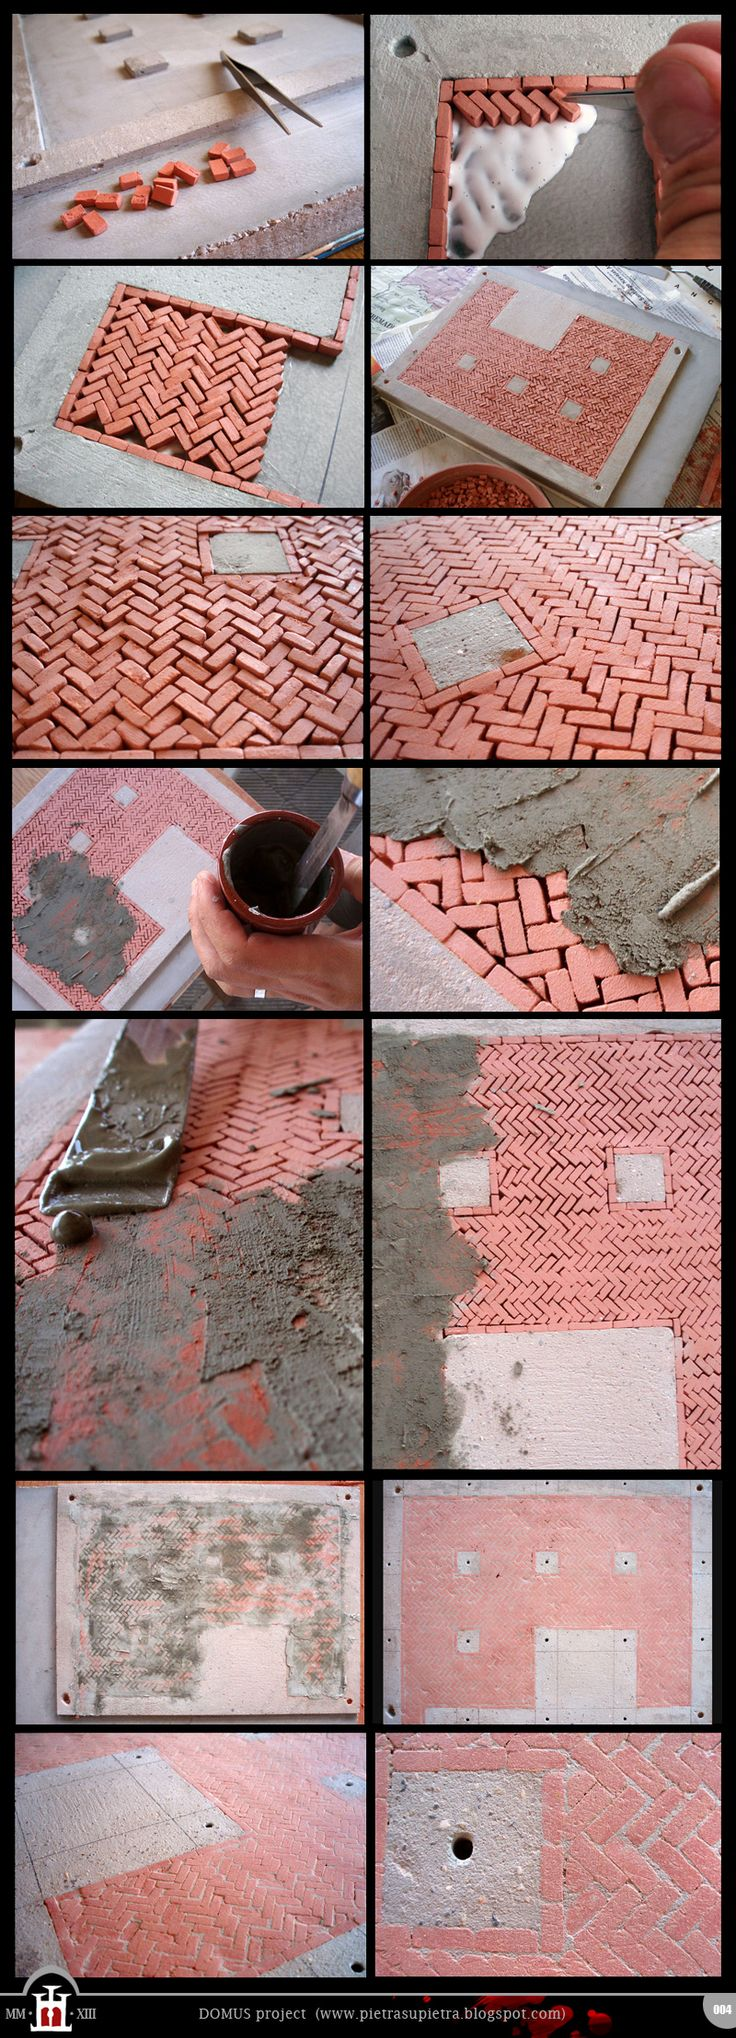 Domus project 4: Basement floor with clay bricks  http://pietrasupietra.blogspot.com/2011/09/construction-04-basement-floor.html  The Domus project is the construction in scale 1:50 of an imaginary medieval palace. It's made of clay, stones, slate, wood and other construction materials in the style of rich genoese buildings from the middle of XIV century.